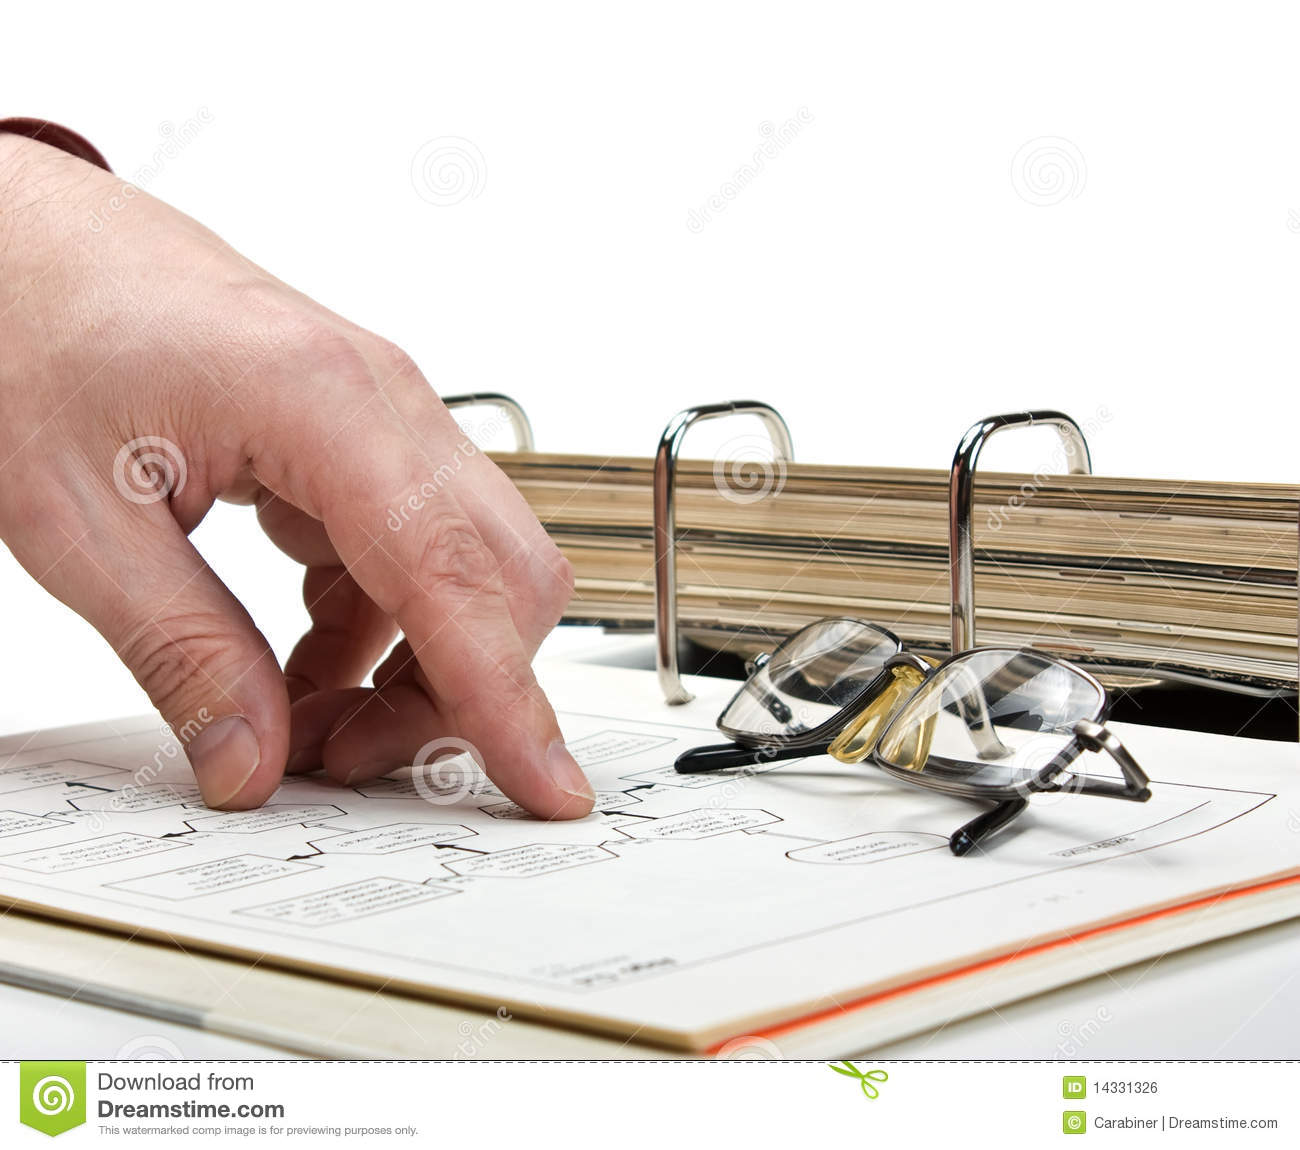 Remarkable Index Finger Pointing To Diagram Stock Photo Image Of Equipment Wiring 101 Eattedownsetwise Assnl